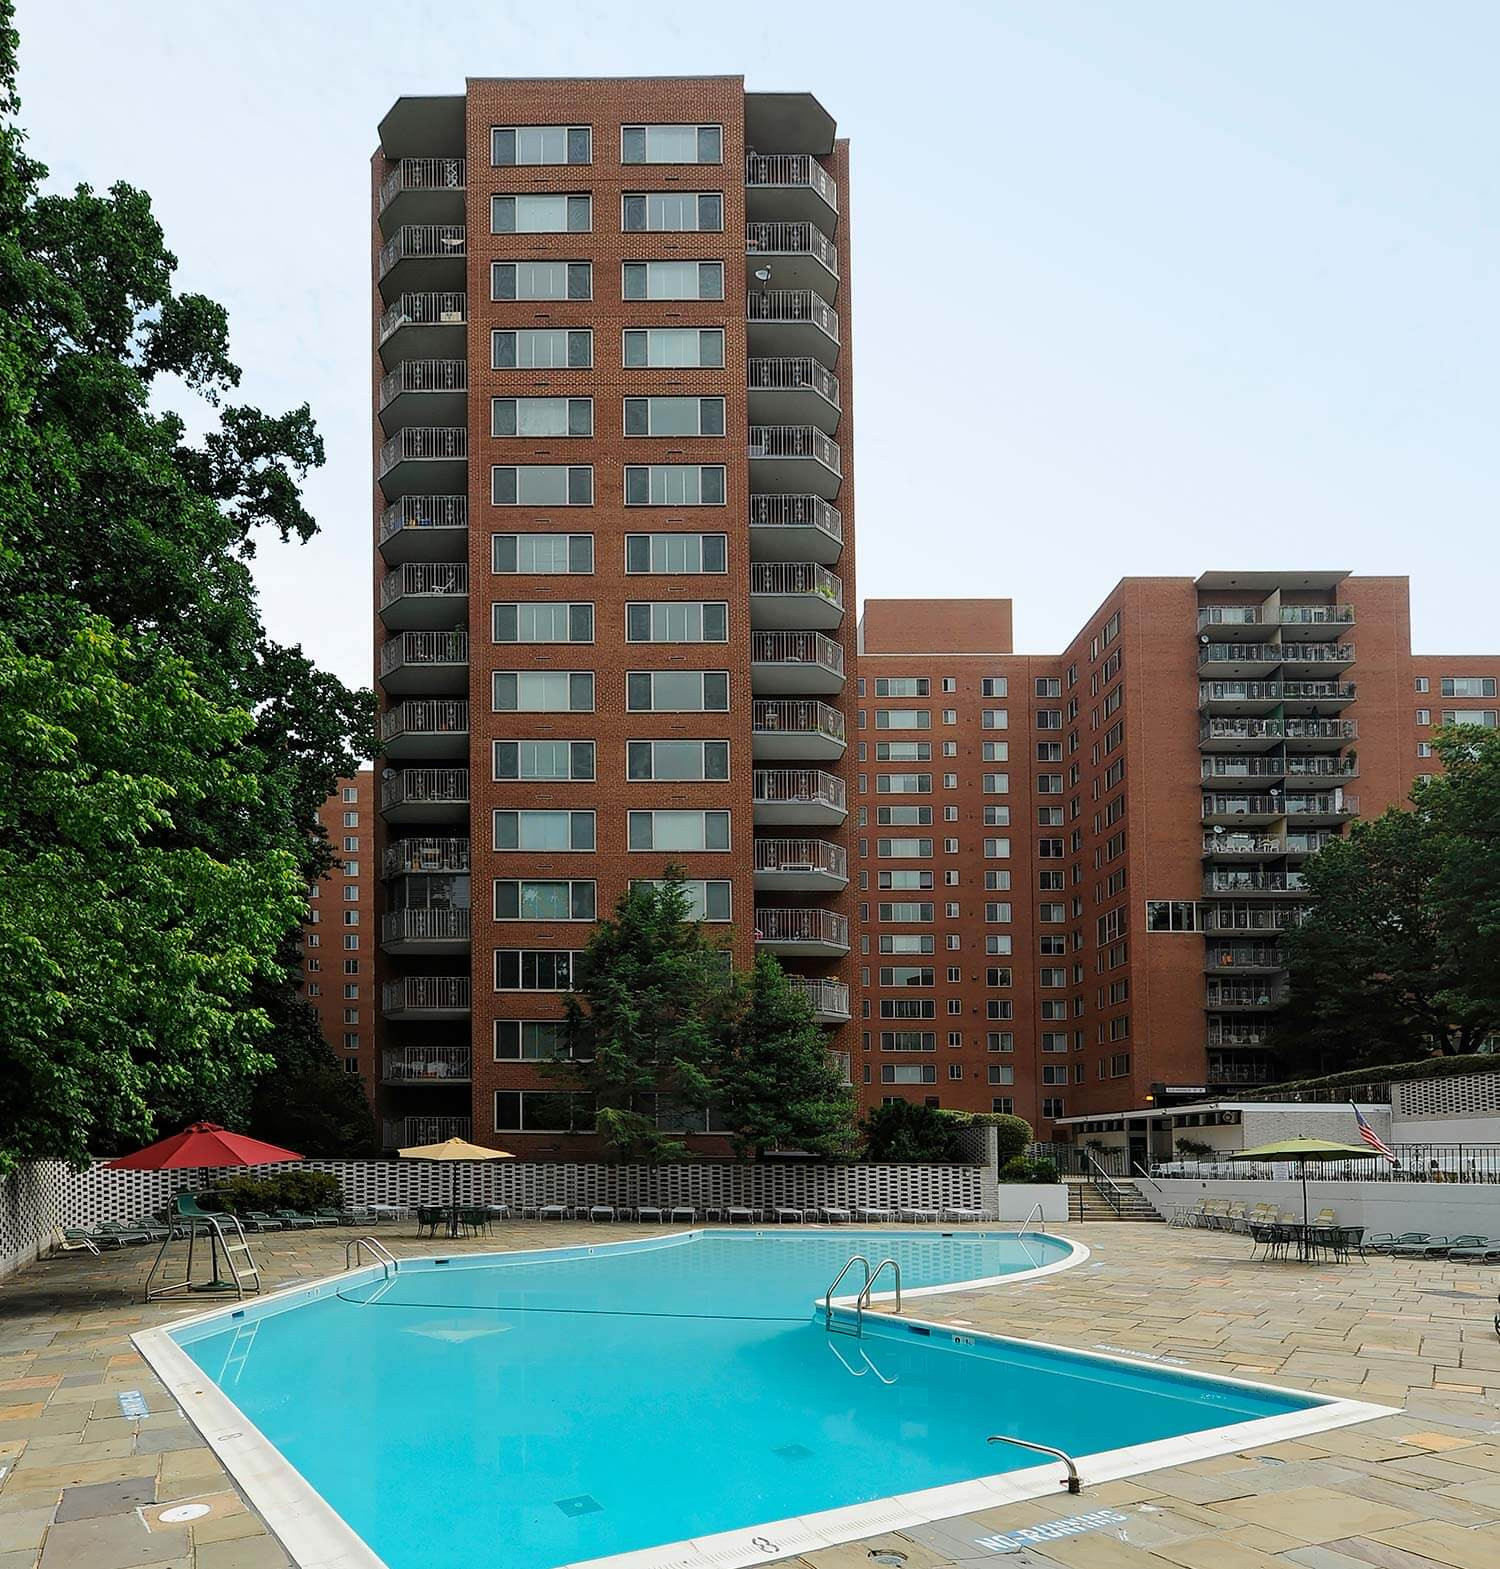 4000 Mass Ave Apartments pool